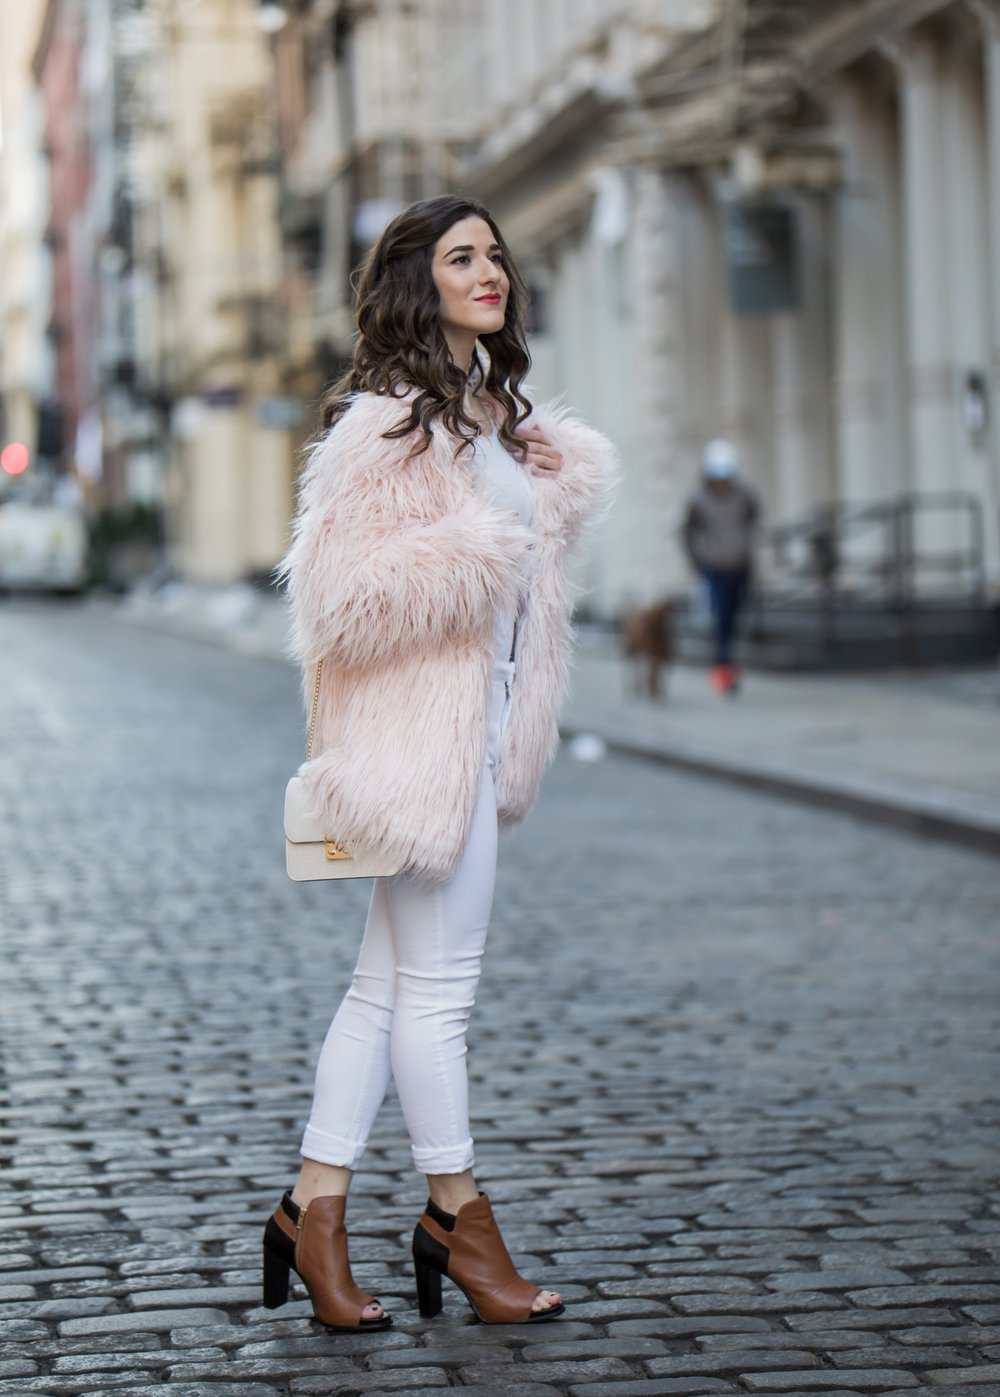 Pink Faux Fur Jacket White Jeans The Best Career Advice Esther Santer Fashion Blog NYC Street Style Blogger Outfit OOTD Trendy Winter Whites Henri Bendel Bag Tan Booties Girl Women Shop Sale Hair Shoes Wearing What To Wear Model Photoshoot Accessories.jpg